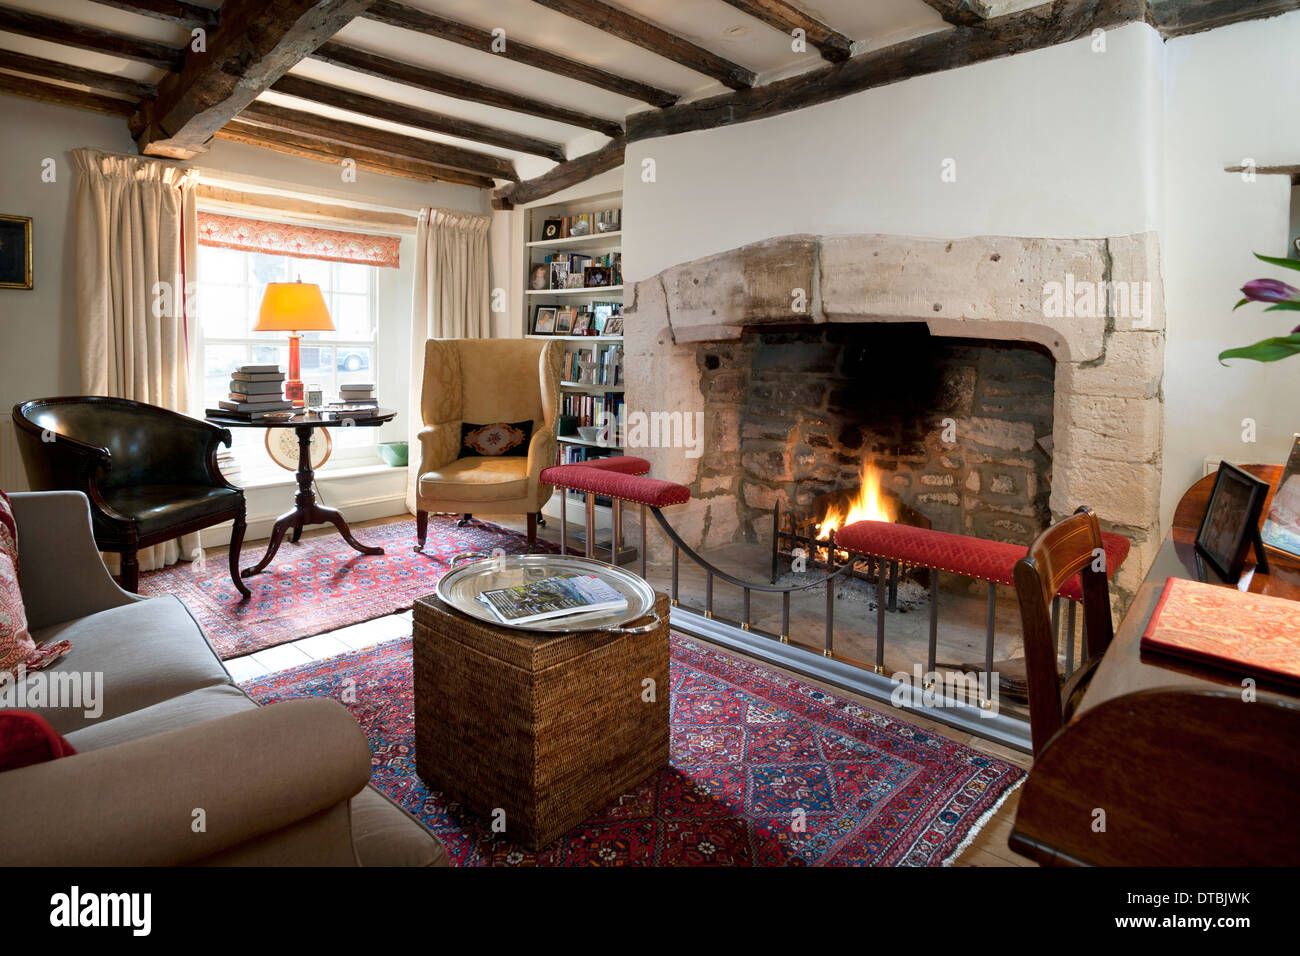 Large Open Fireplace In A Period Home Living Sitting Room.   Stock Image